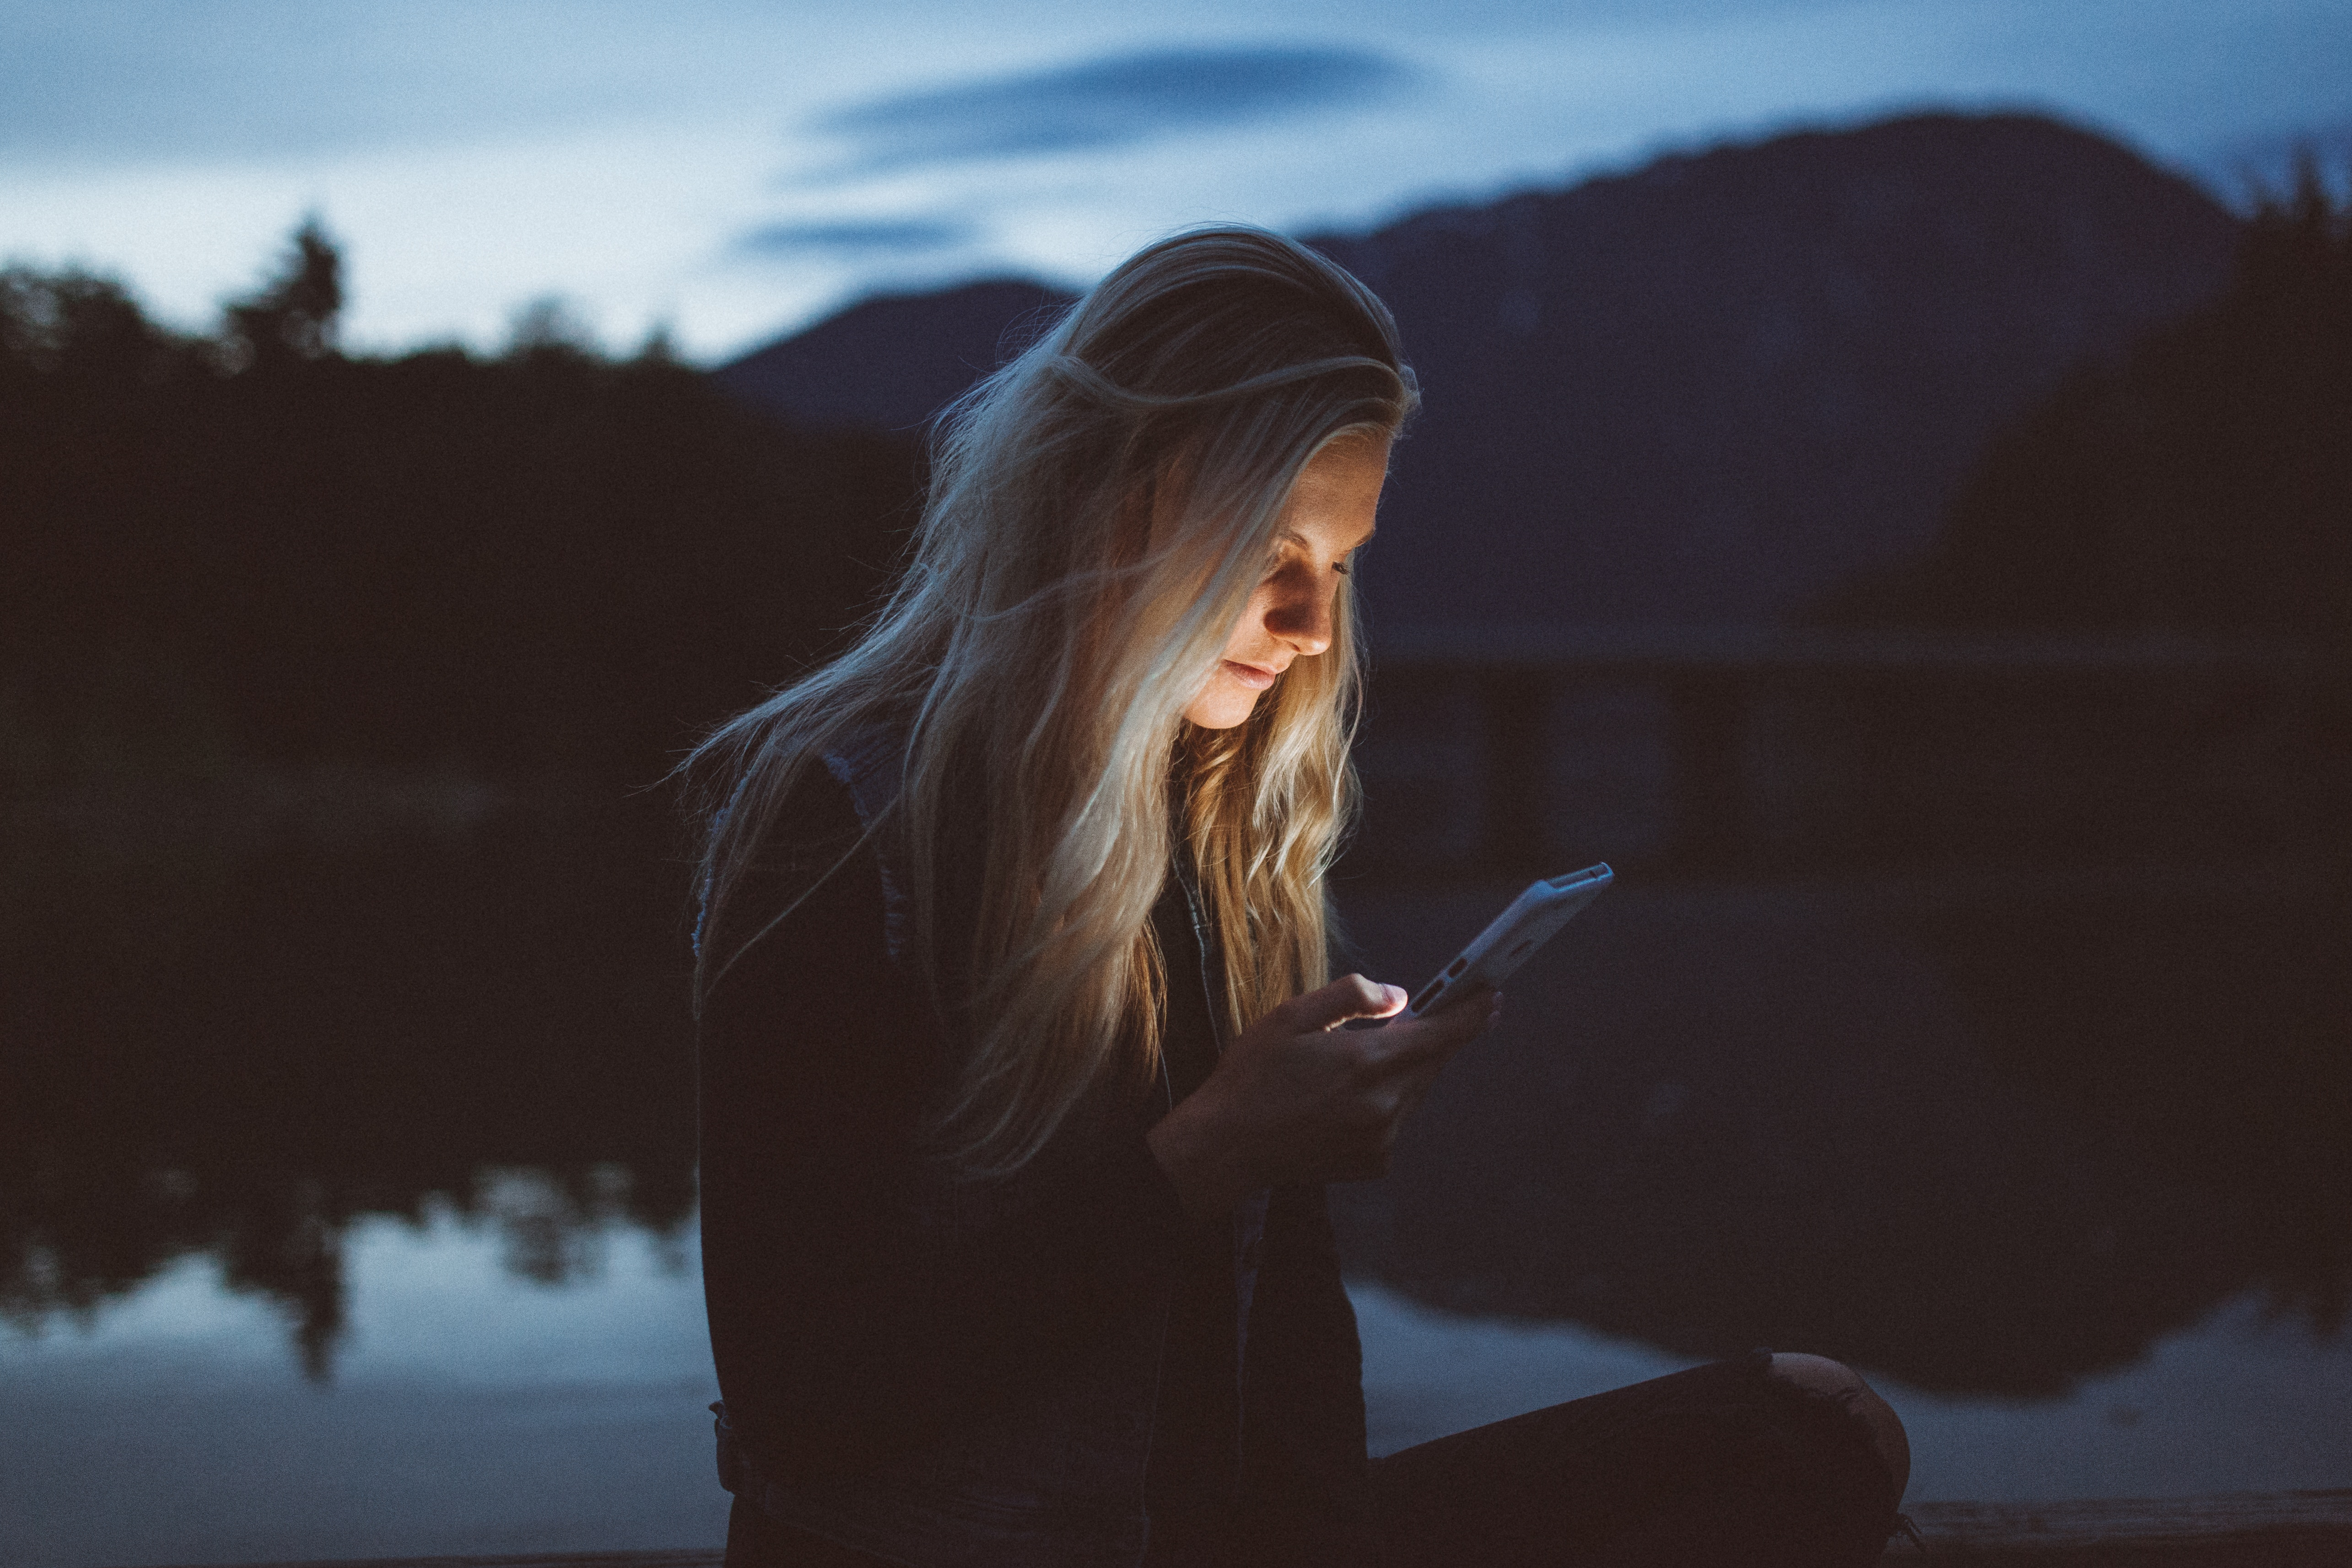 teen girl looking at phone in front of lake